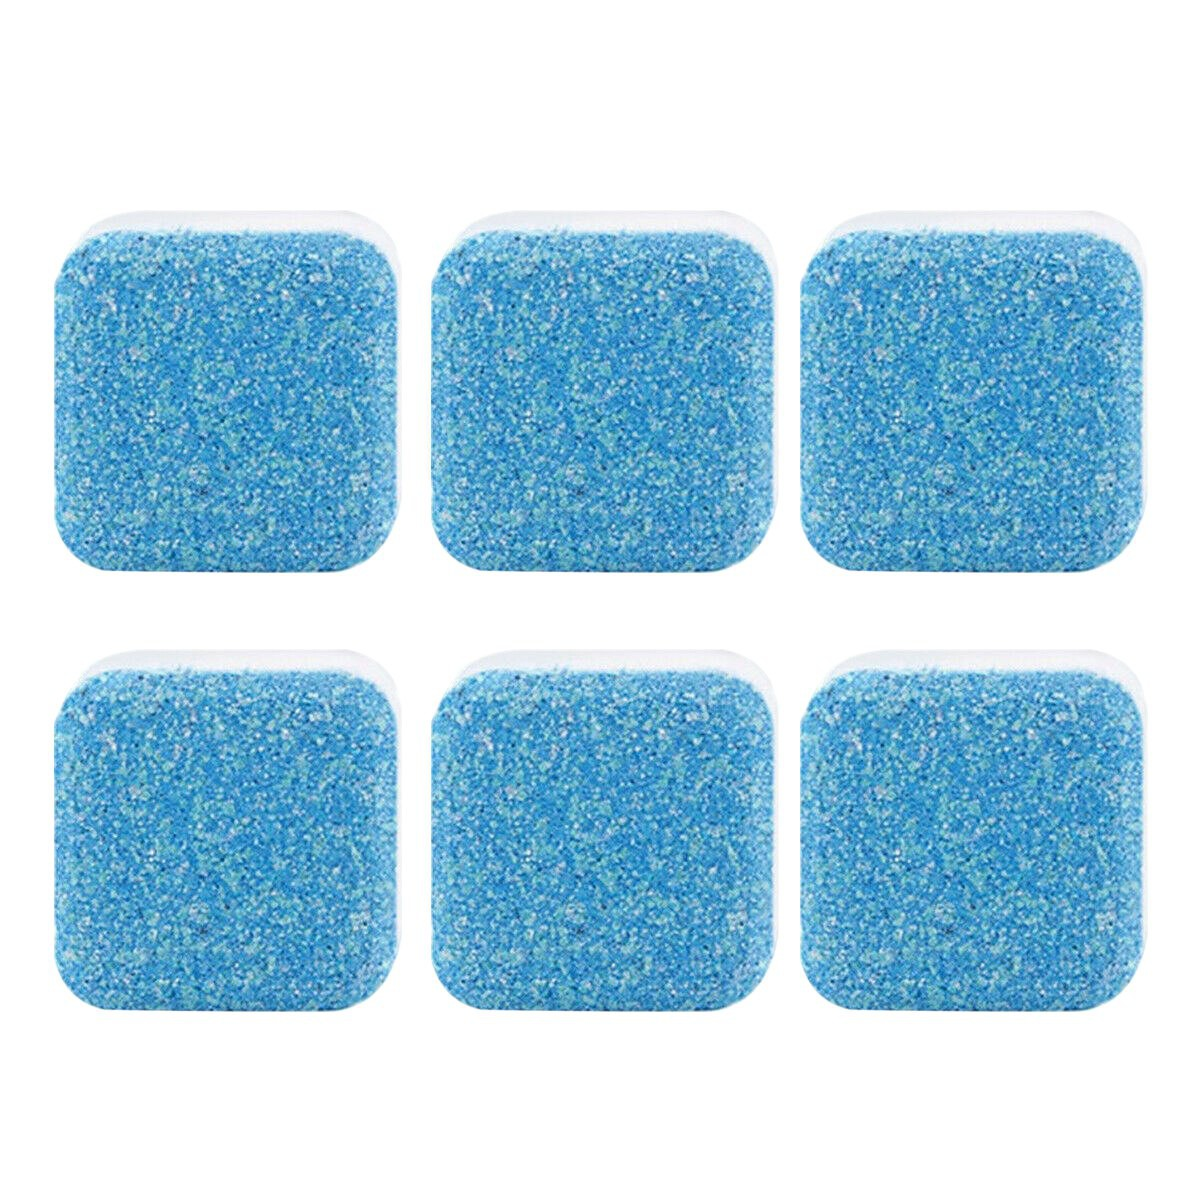 40Pcs Washing Machine Disinfecting Cleaner Effervescent Tablets